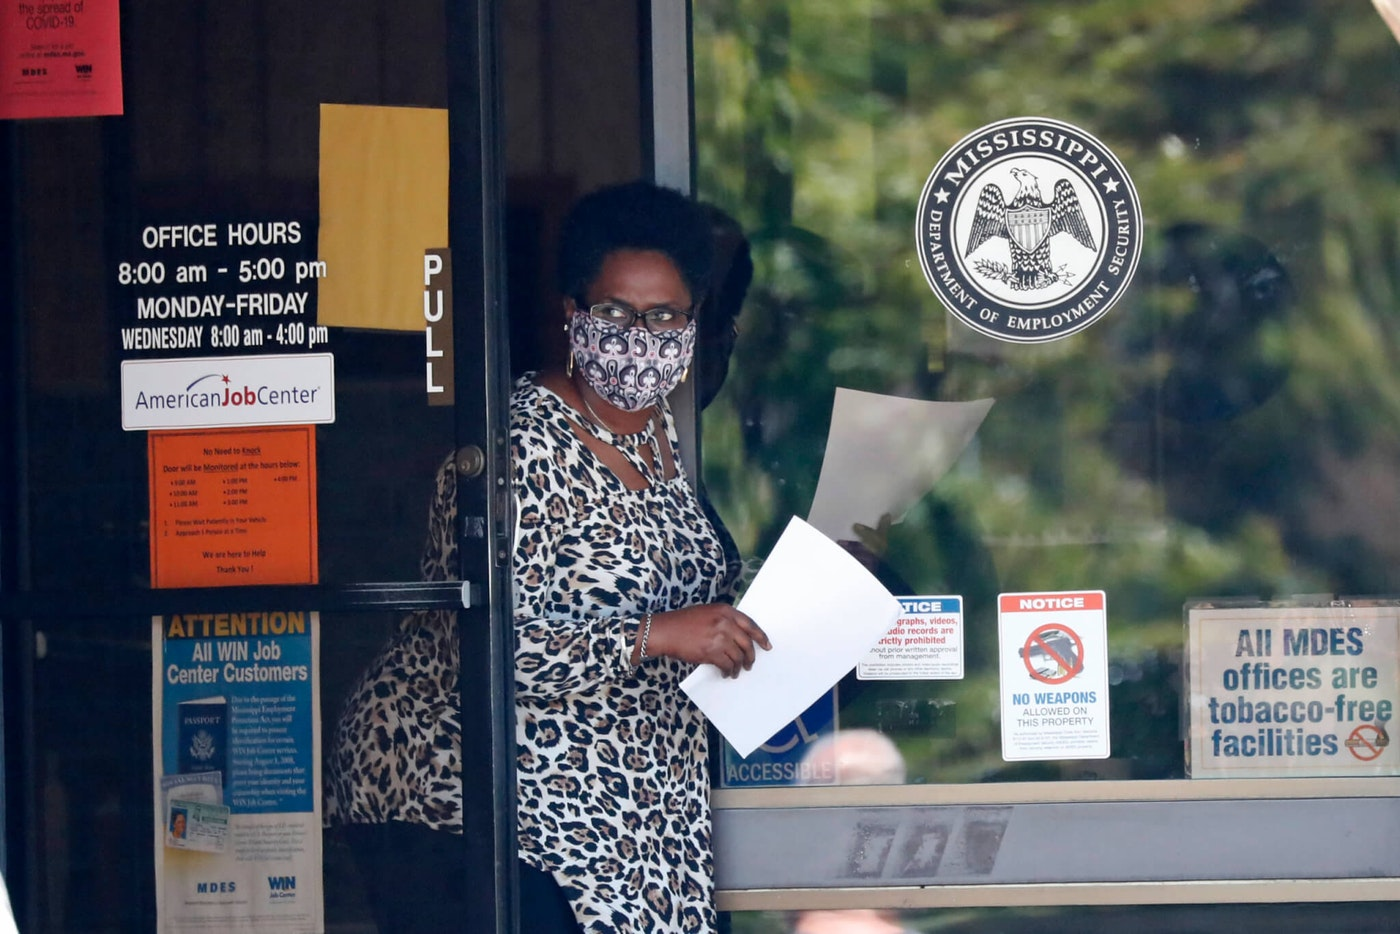 A masked worker at this state WIN job center in Pearl, Miss., holds an unemployment benefit application form as she waits for a client, Tuesday, April 21, 2020.  (AP Photo/Rogelio V. Solis)